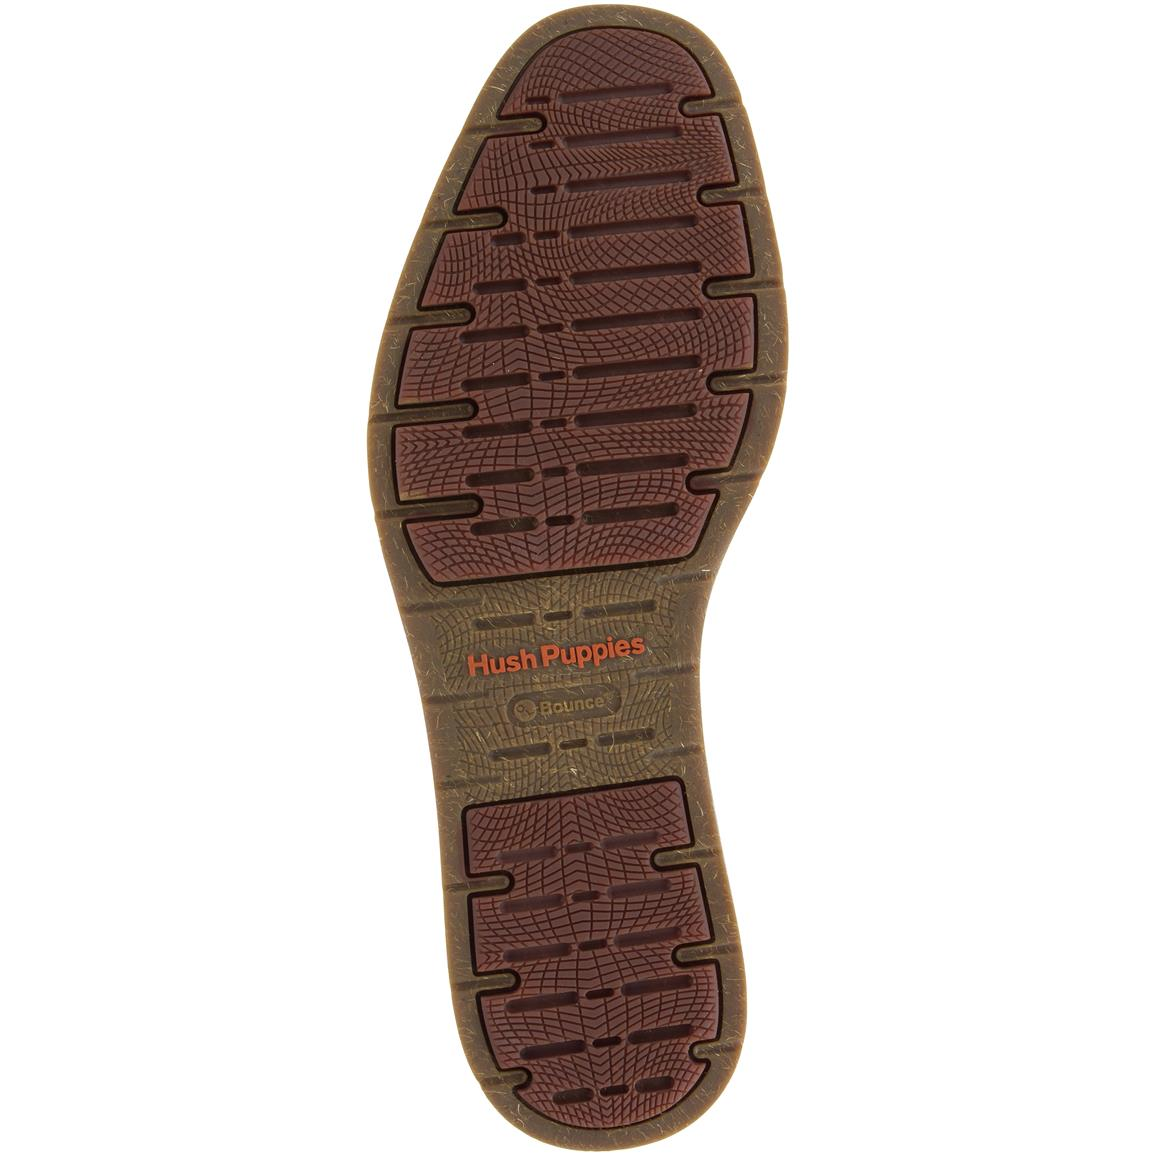 Bounce 2-density rubber outsole with shredded jute inlay